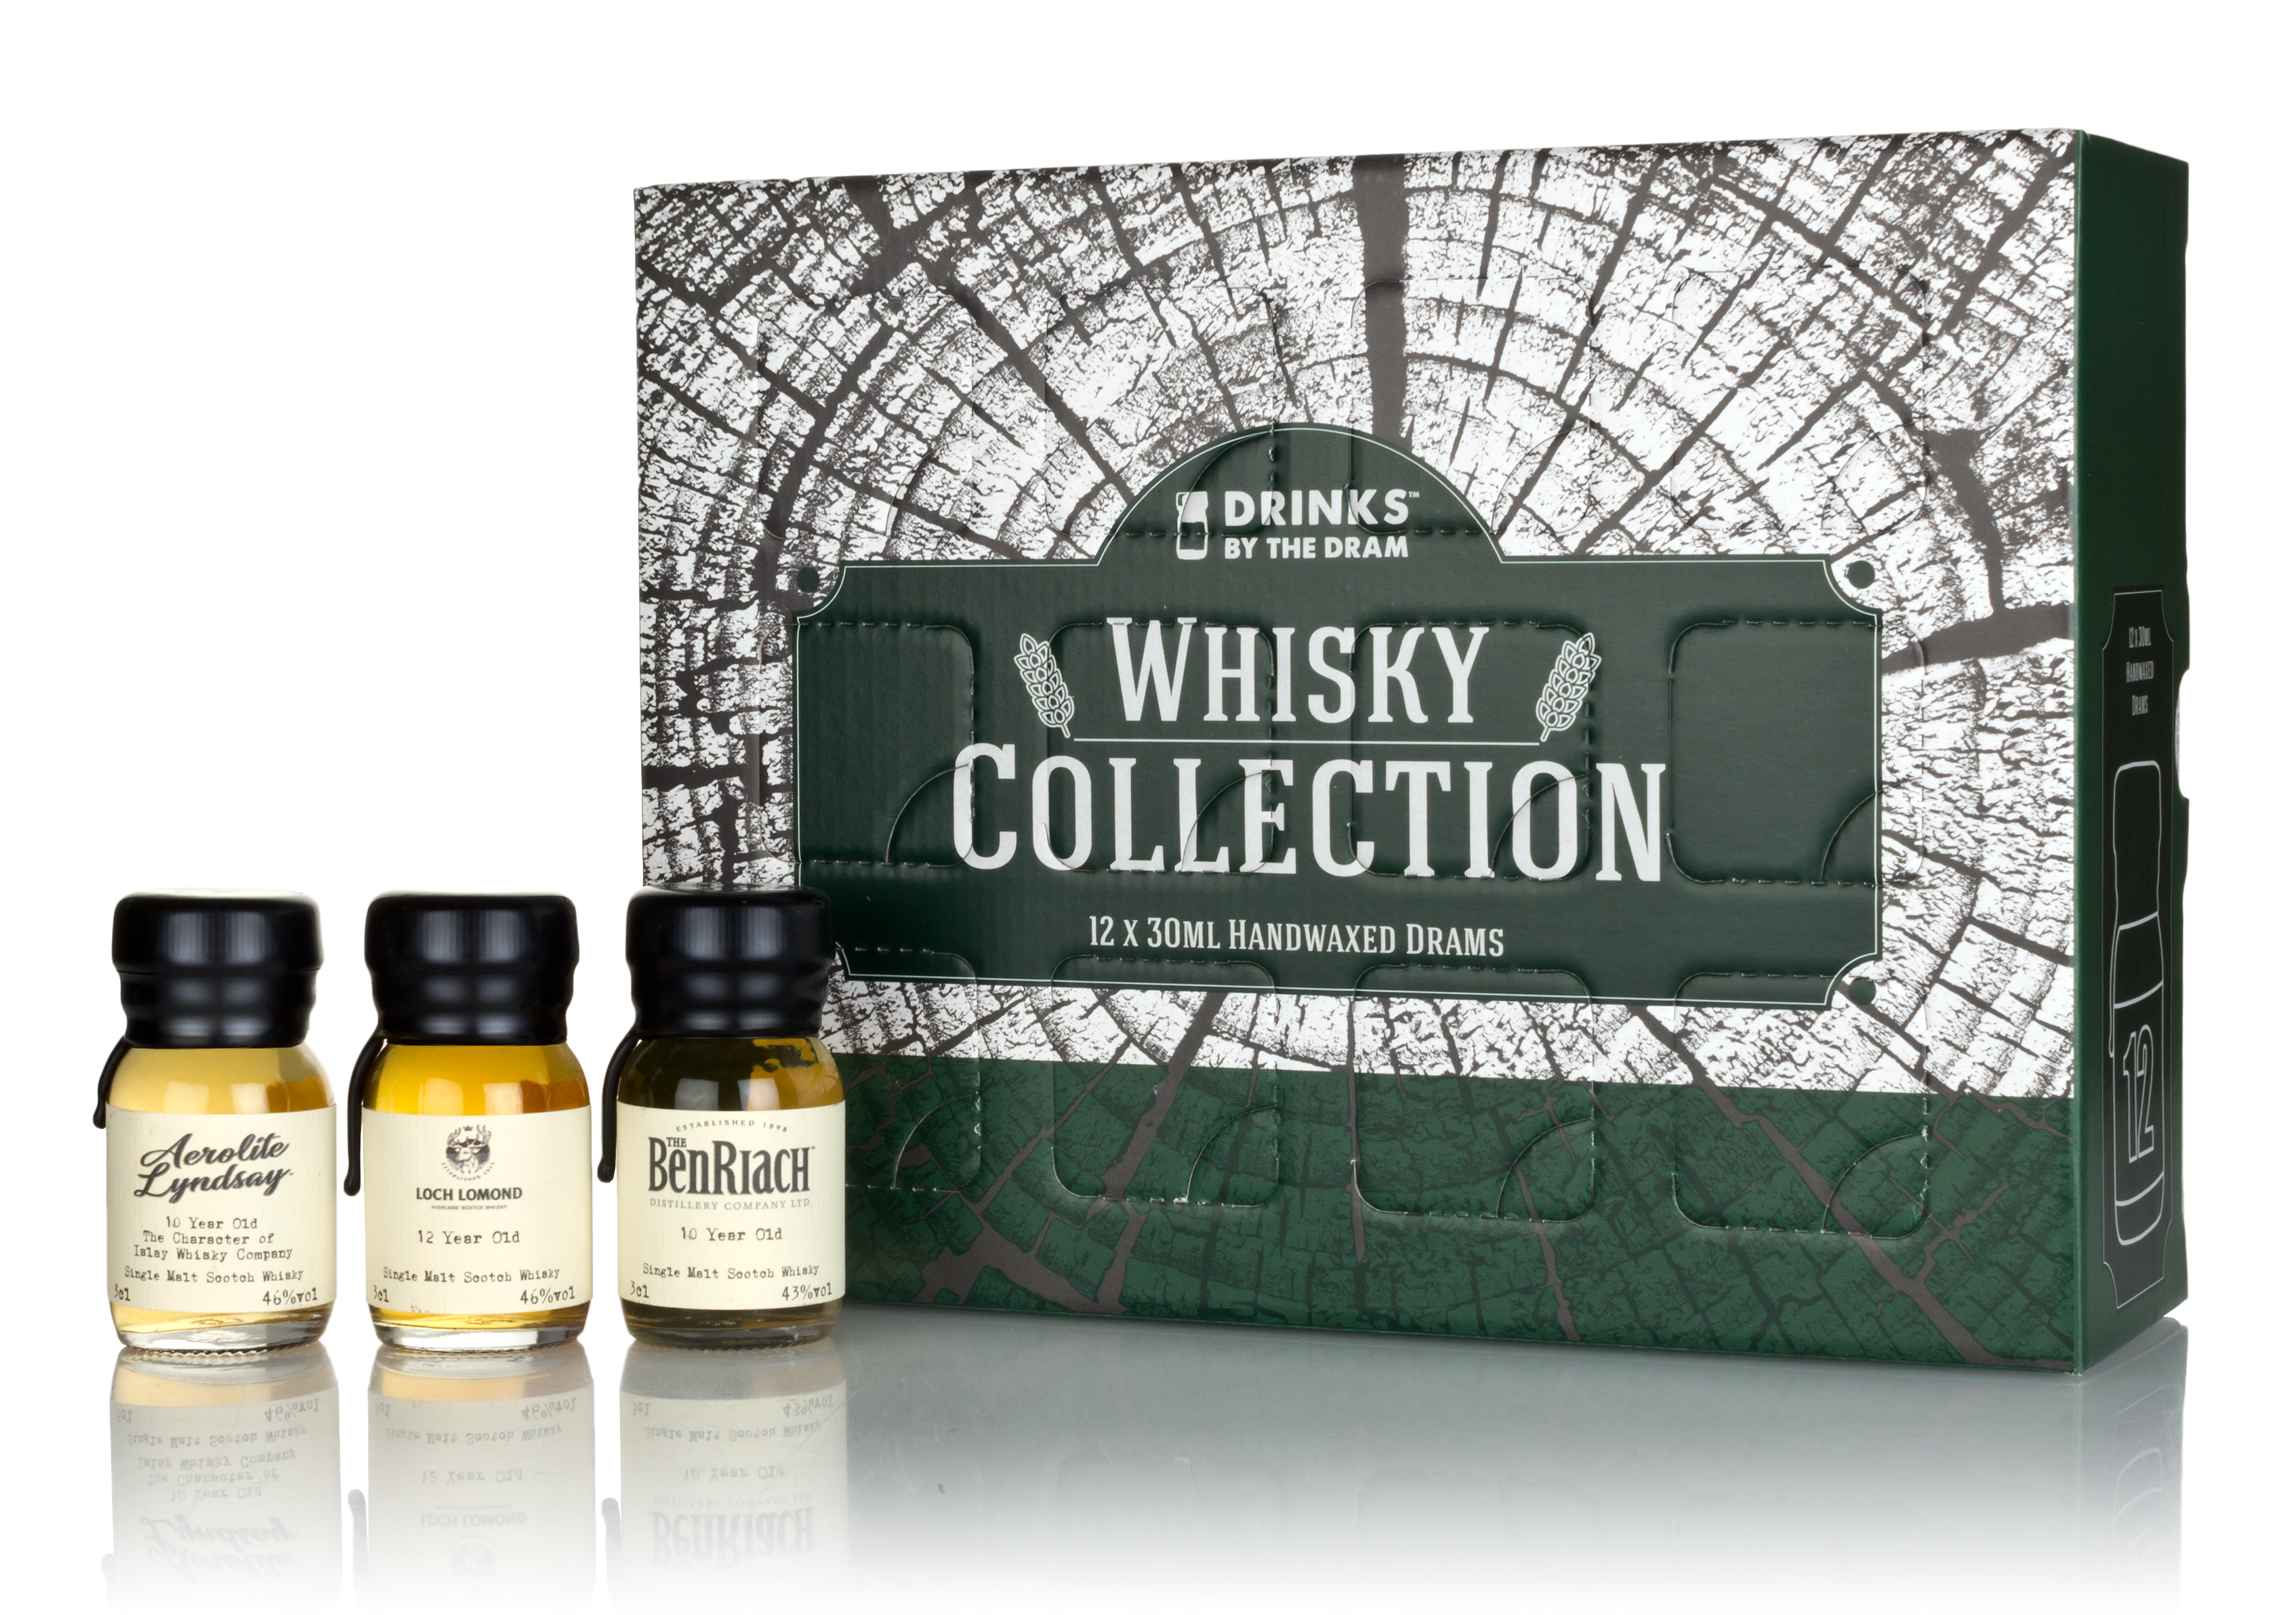 Drinks by the Dram Whisky Collection 2020 Advent Calendar